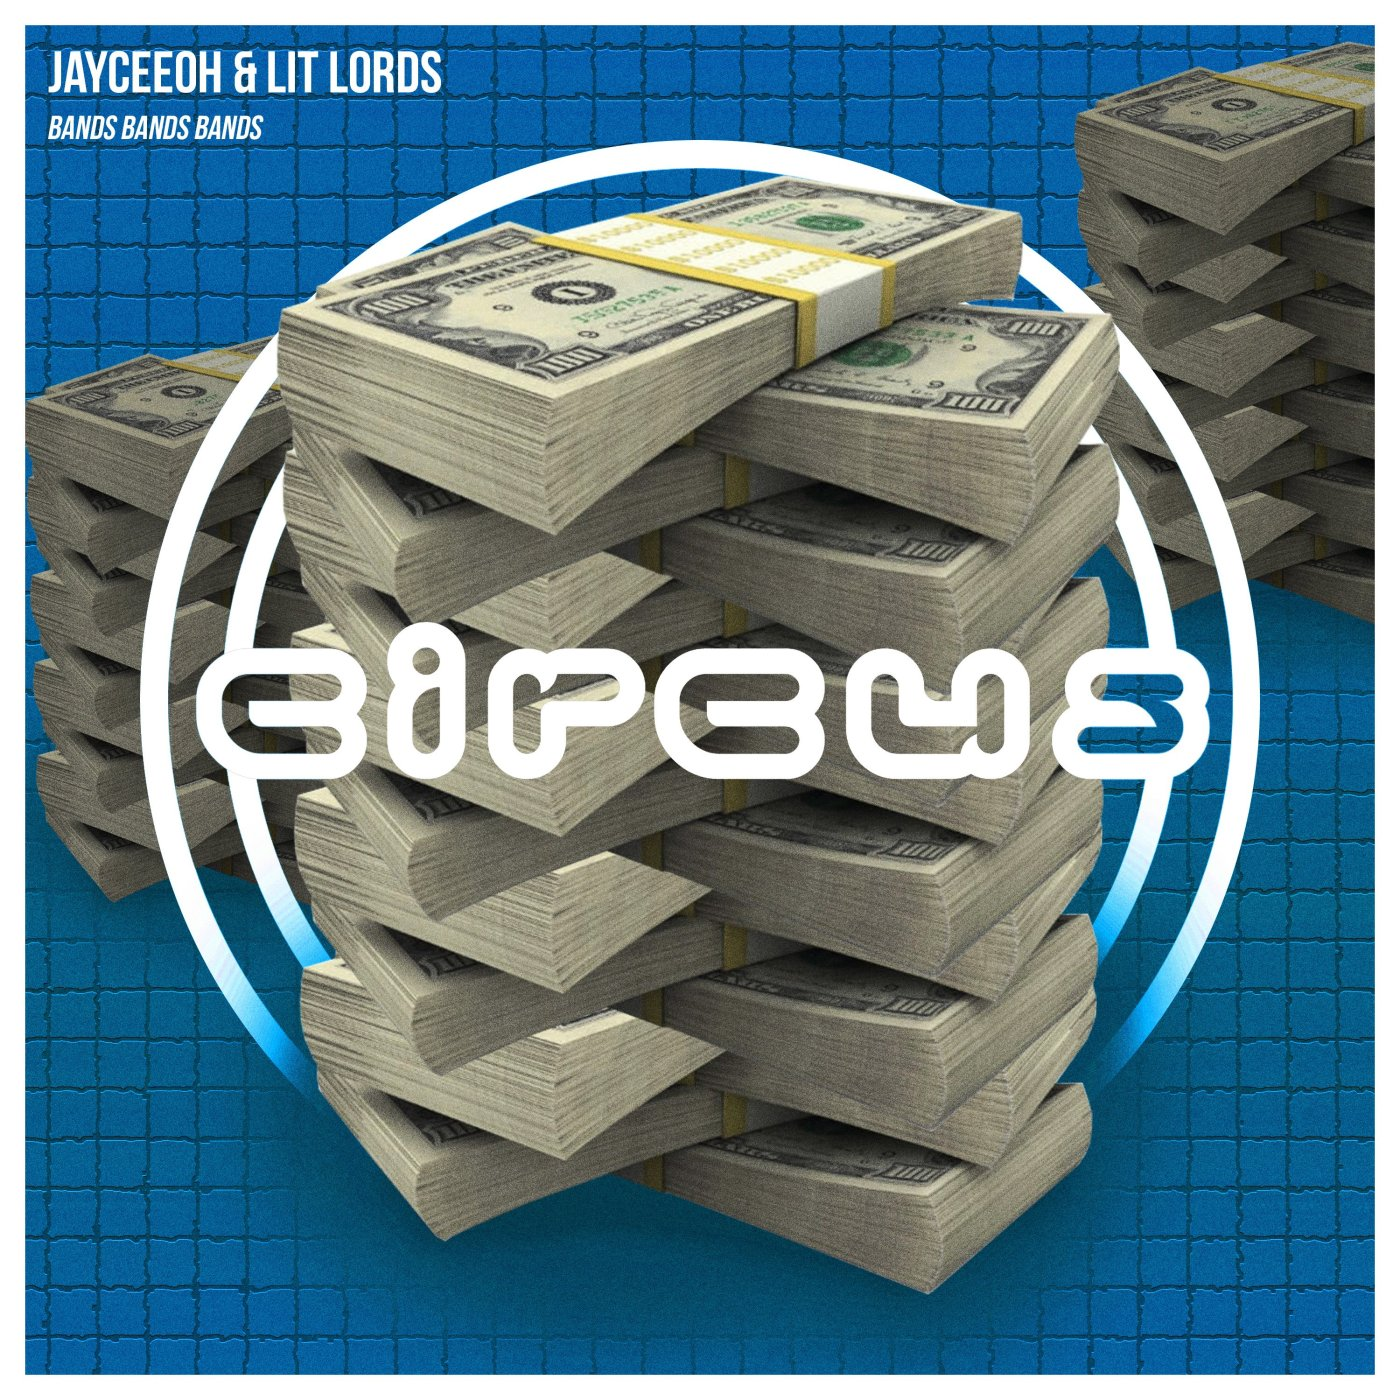 """Jayceeoh & Lit Lords Bring in the Racks with """"Bands Bands"""